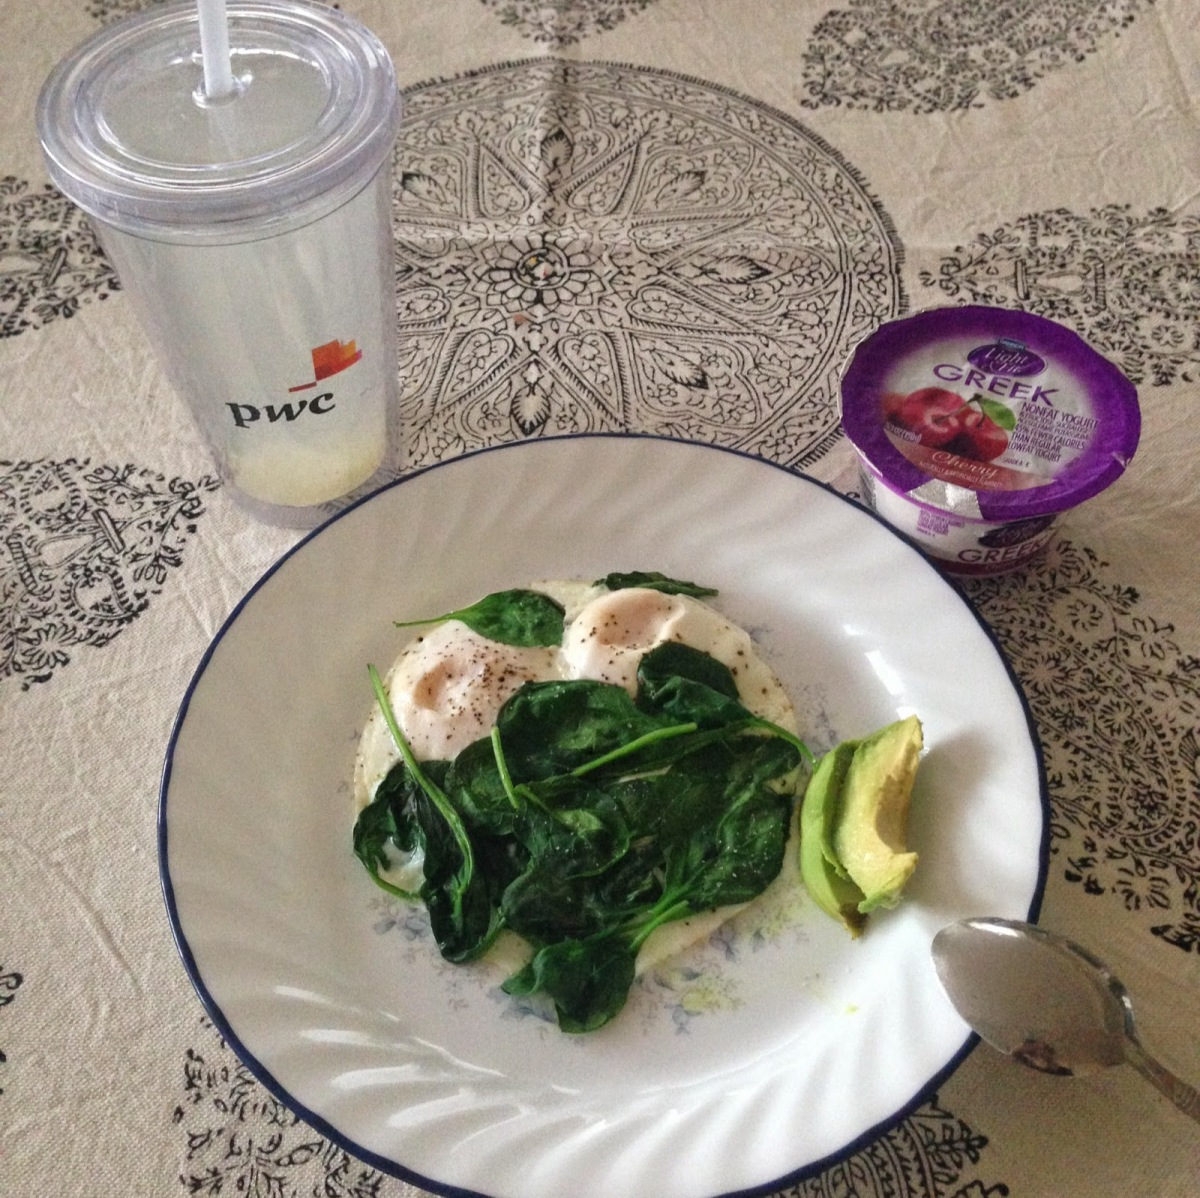 Breakfast: Two whole eggs with spinach, 1/4 avocado and yogurt